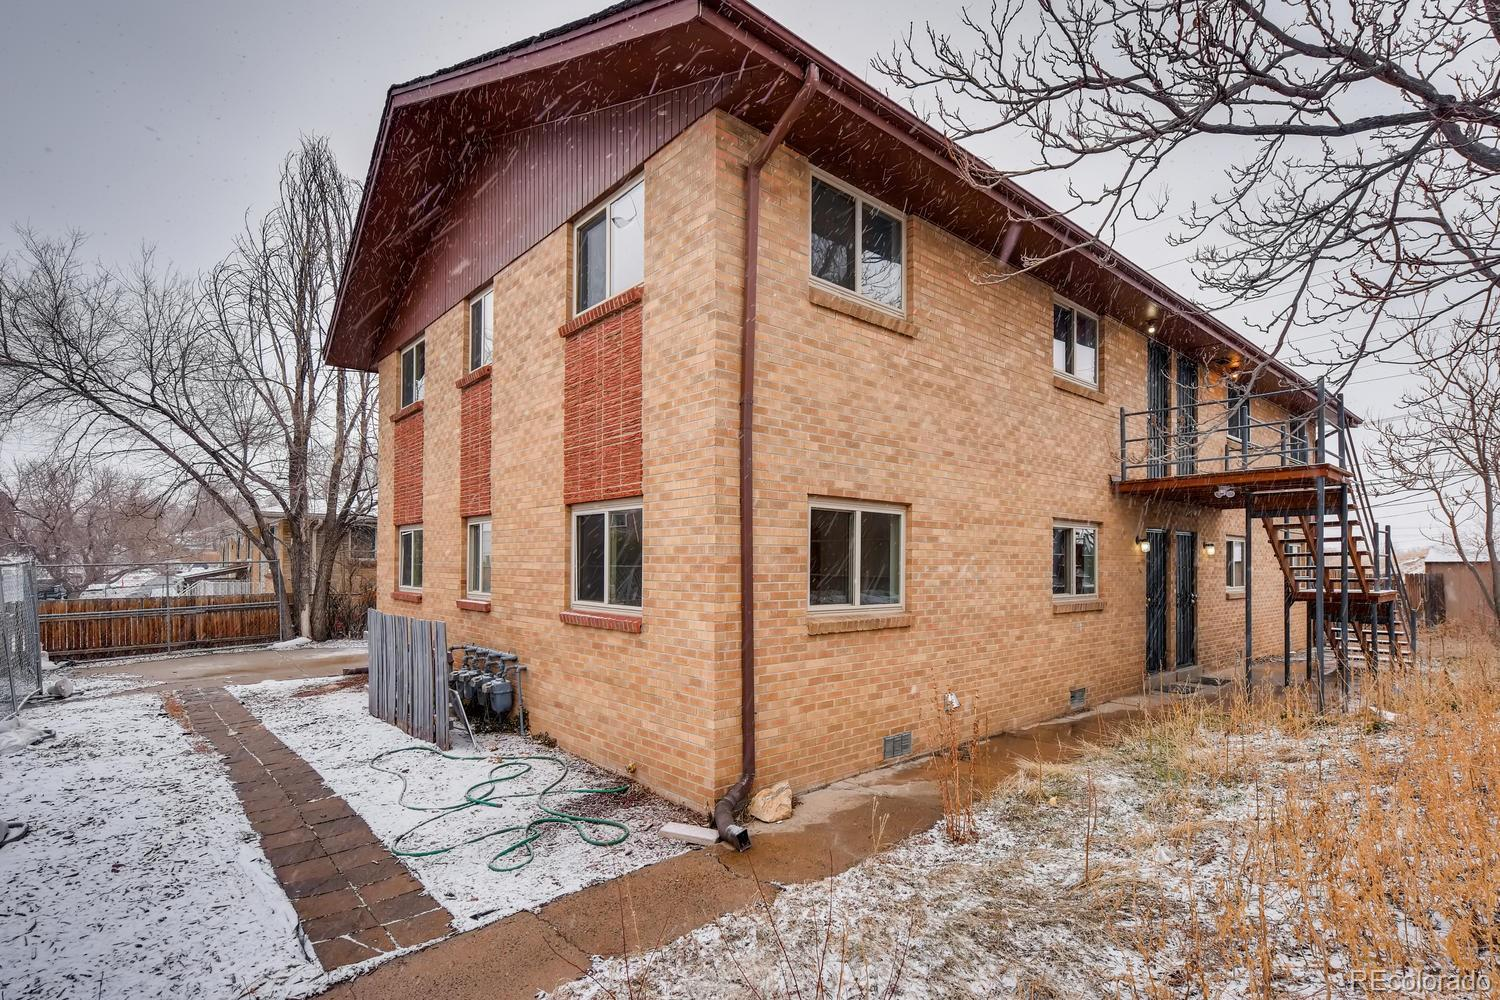 MLS# 6596489 - 11 - 1160 S Quivas Street, Denver, CO 80223